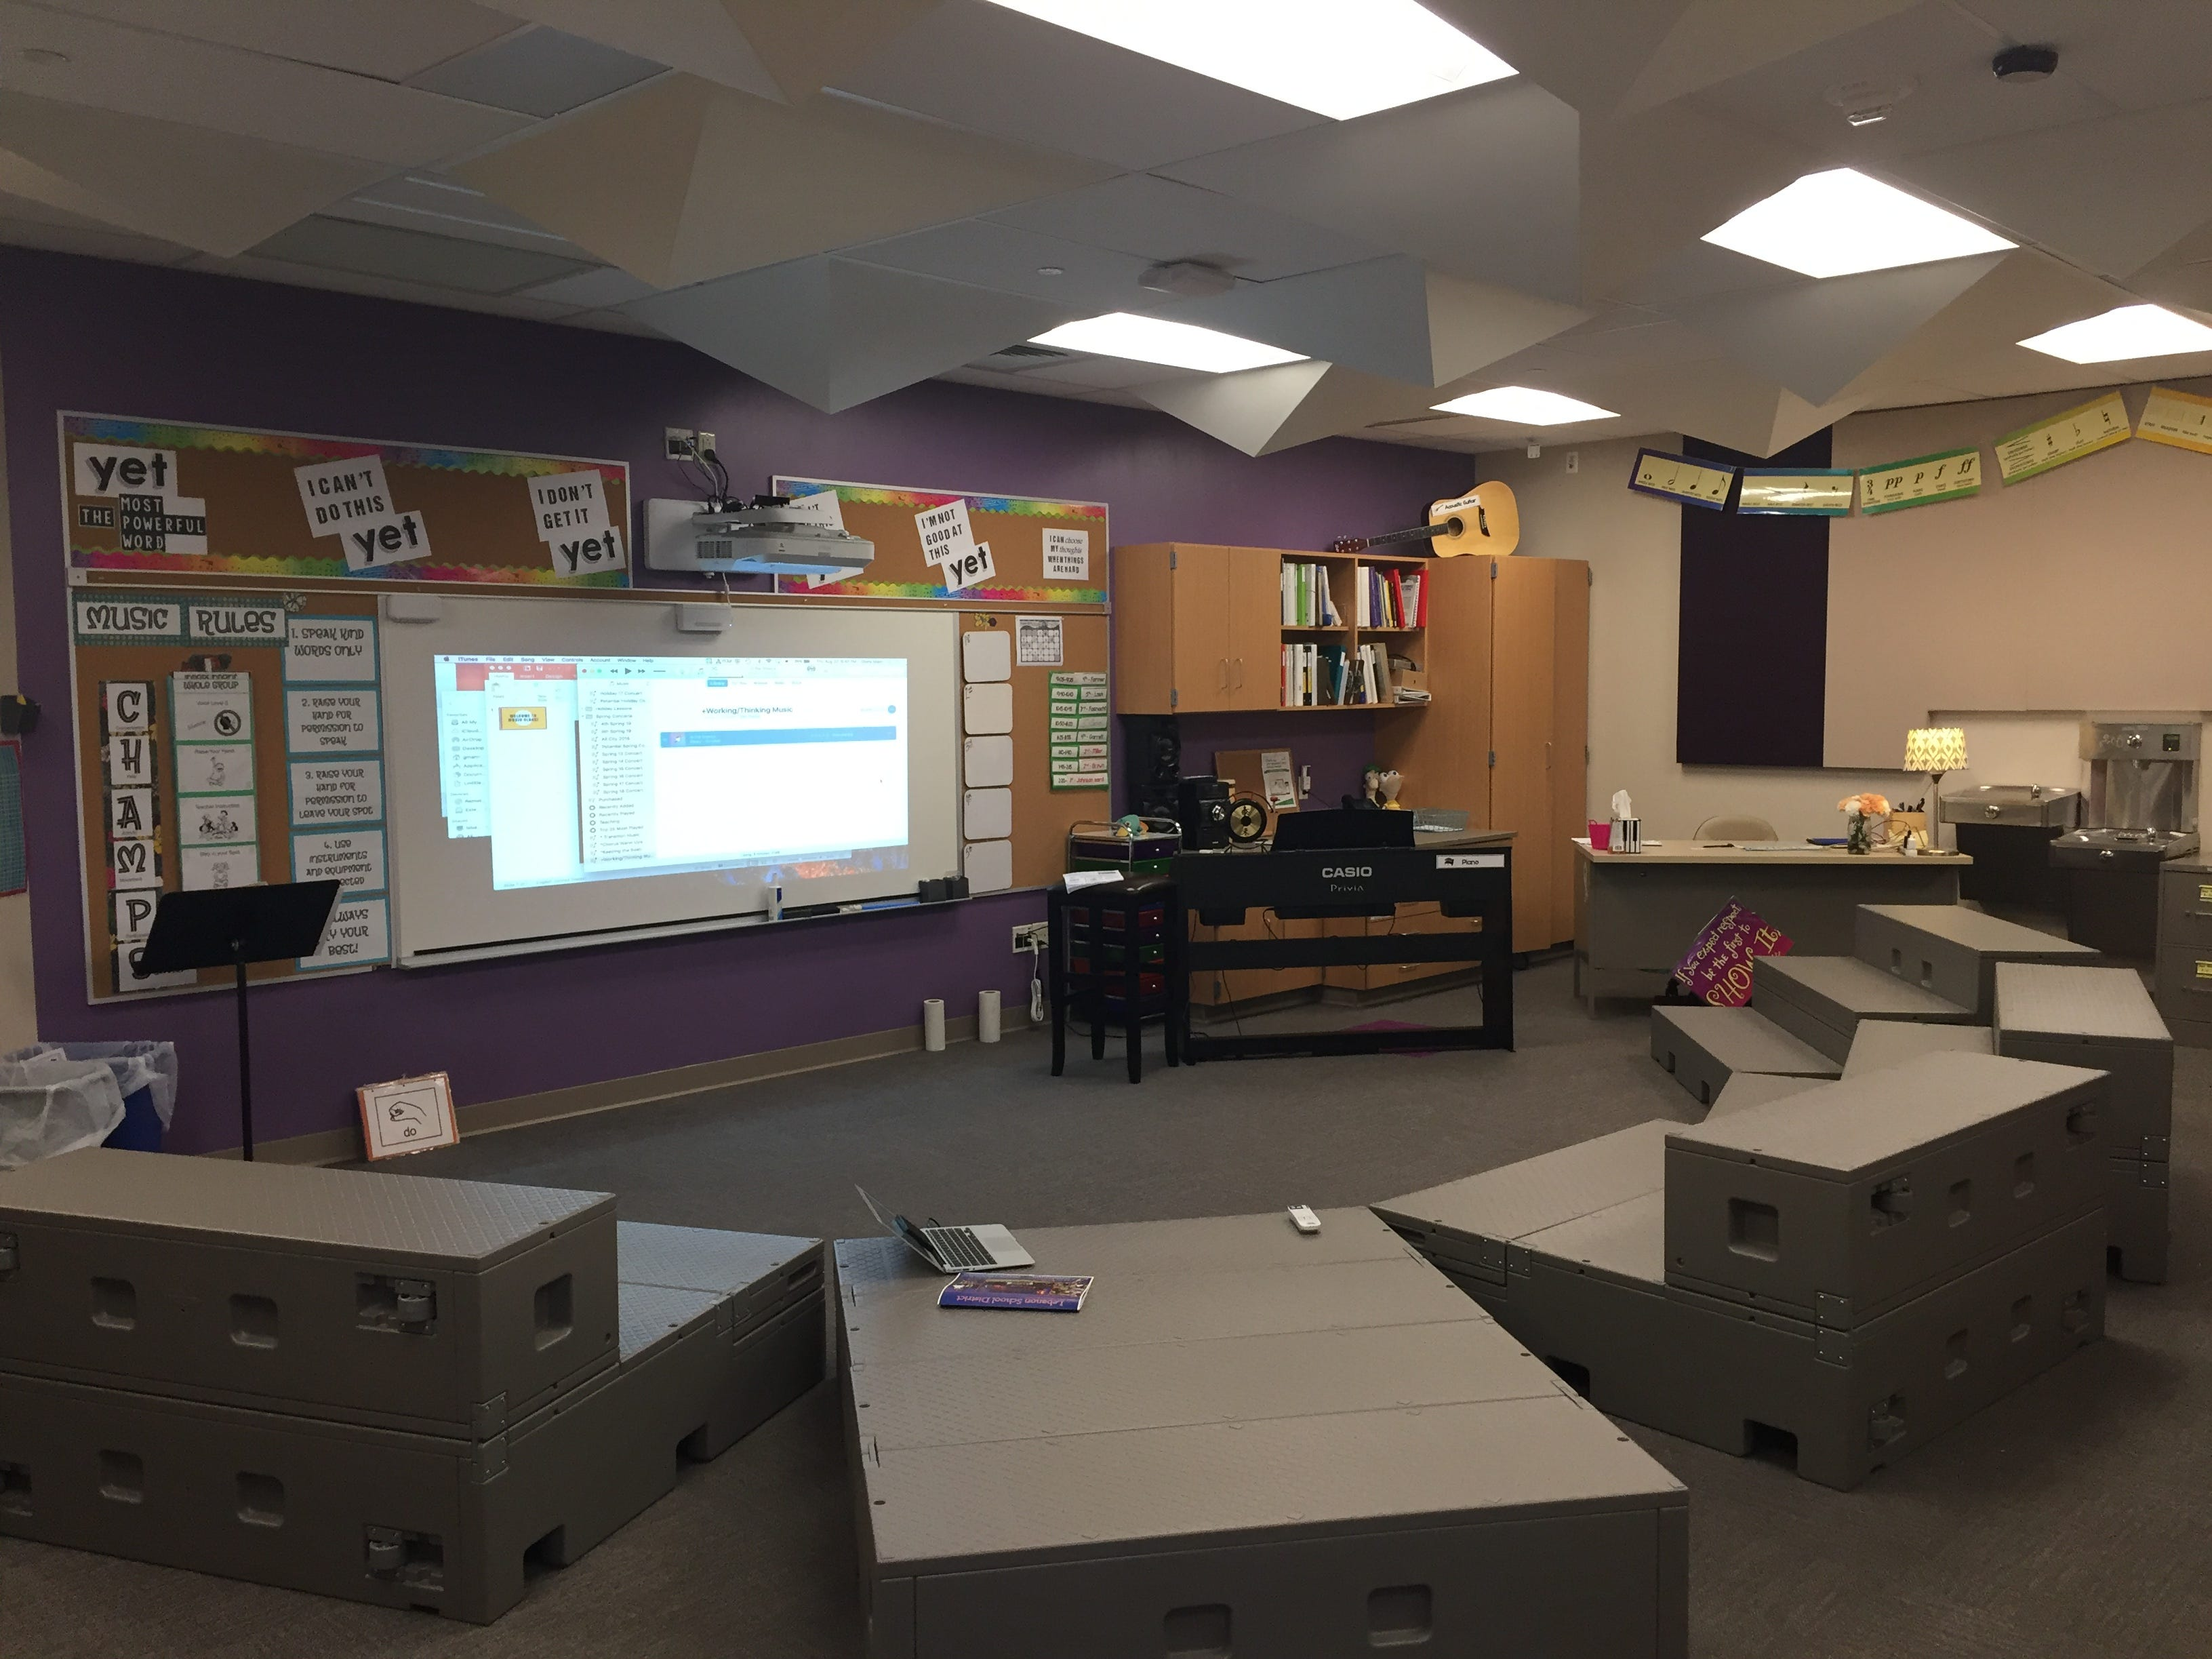 The music room in Lebanon School District's new Northwest Elementary School. The room is soundproofed and designed to reduce echo effects. Seating can be folded into several configurations including benches and a full stage.